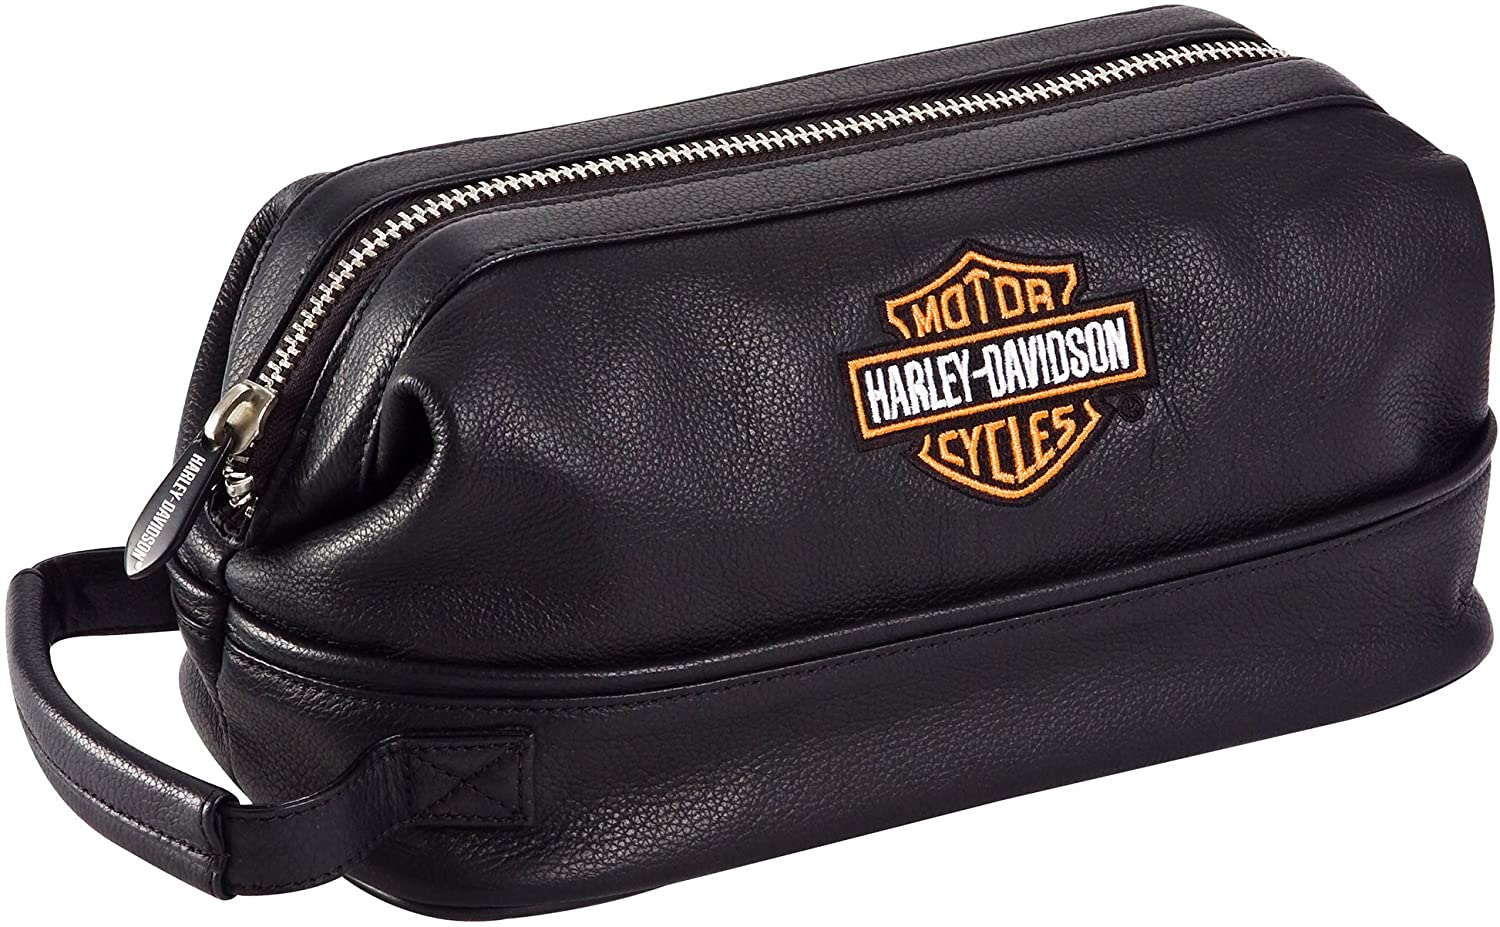 Harley Davidson Leather Toiletry Kit, Bl